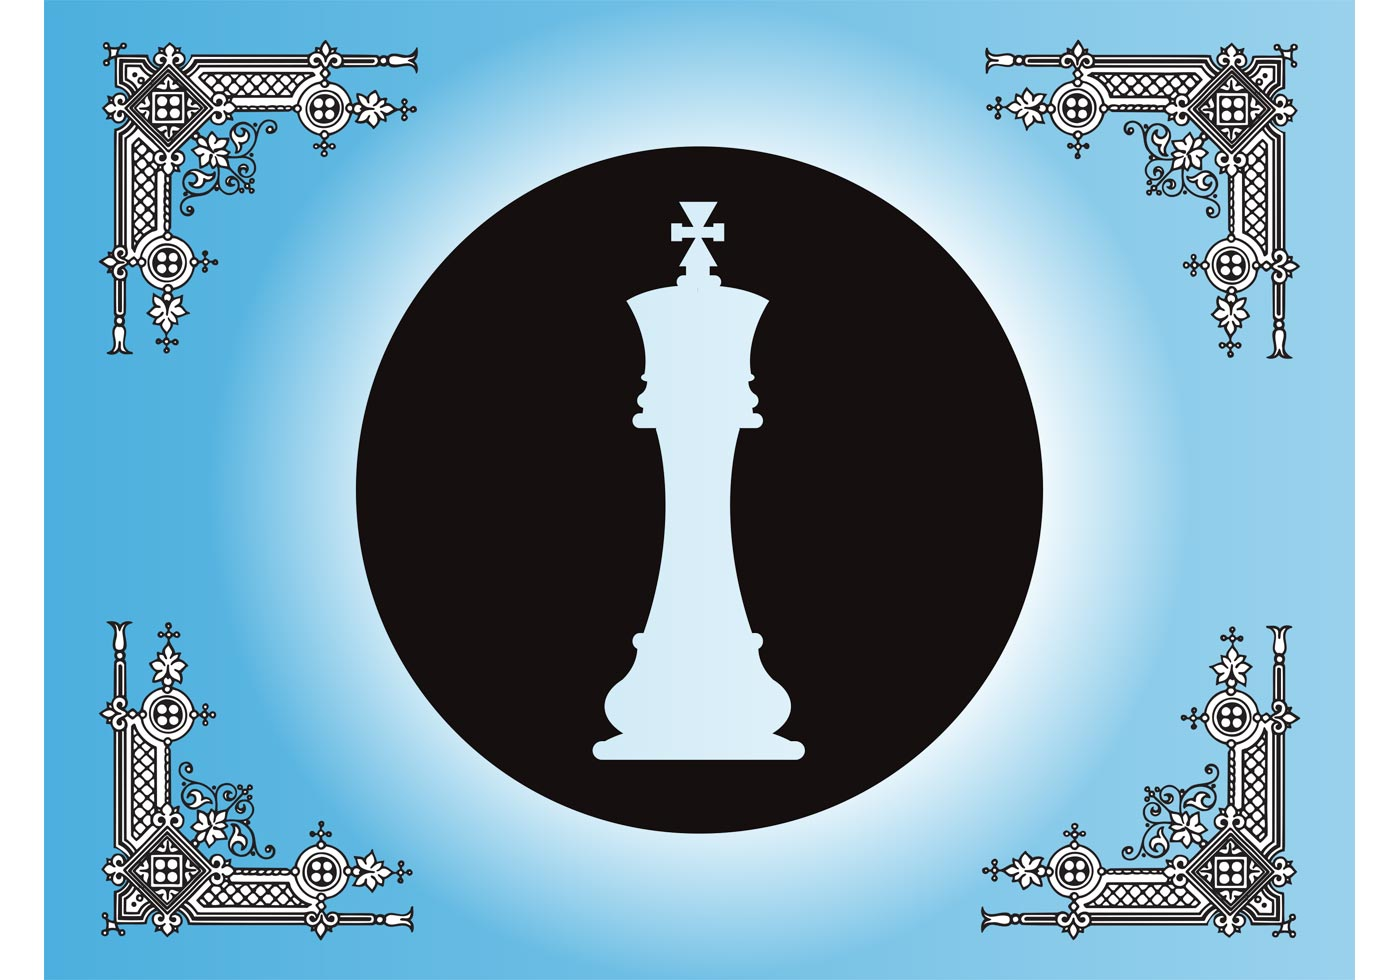 Antique Chess Layout - Download Free Vector Art, Stock ...